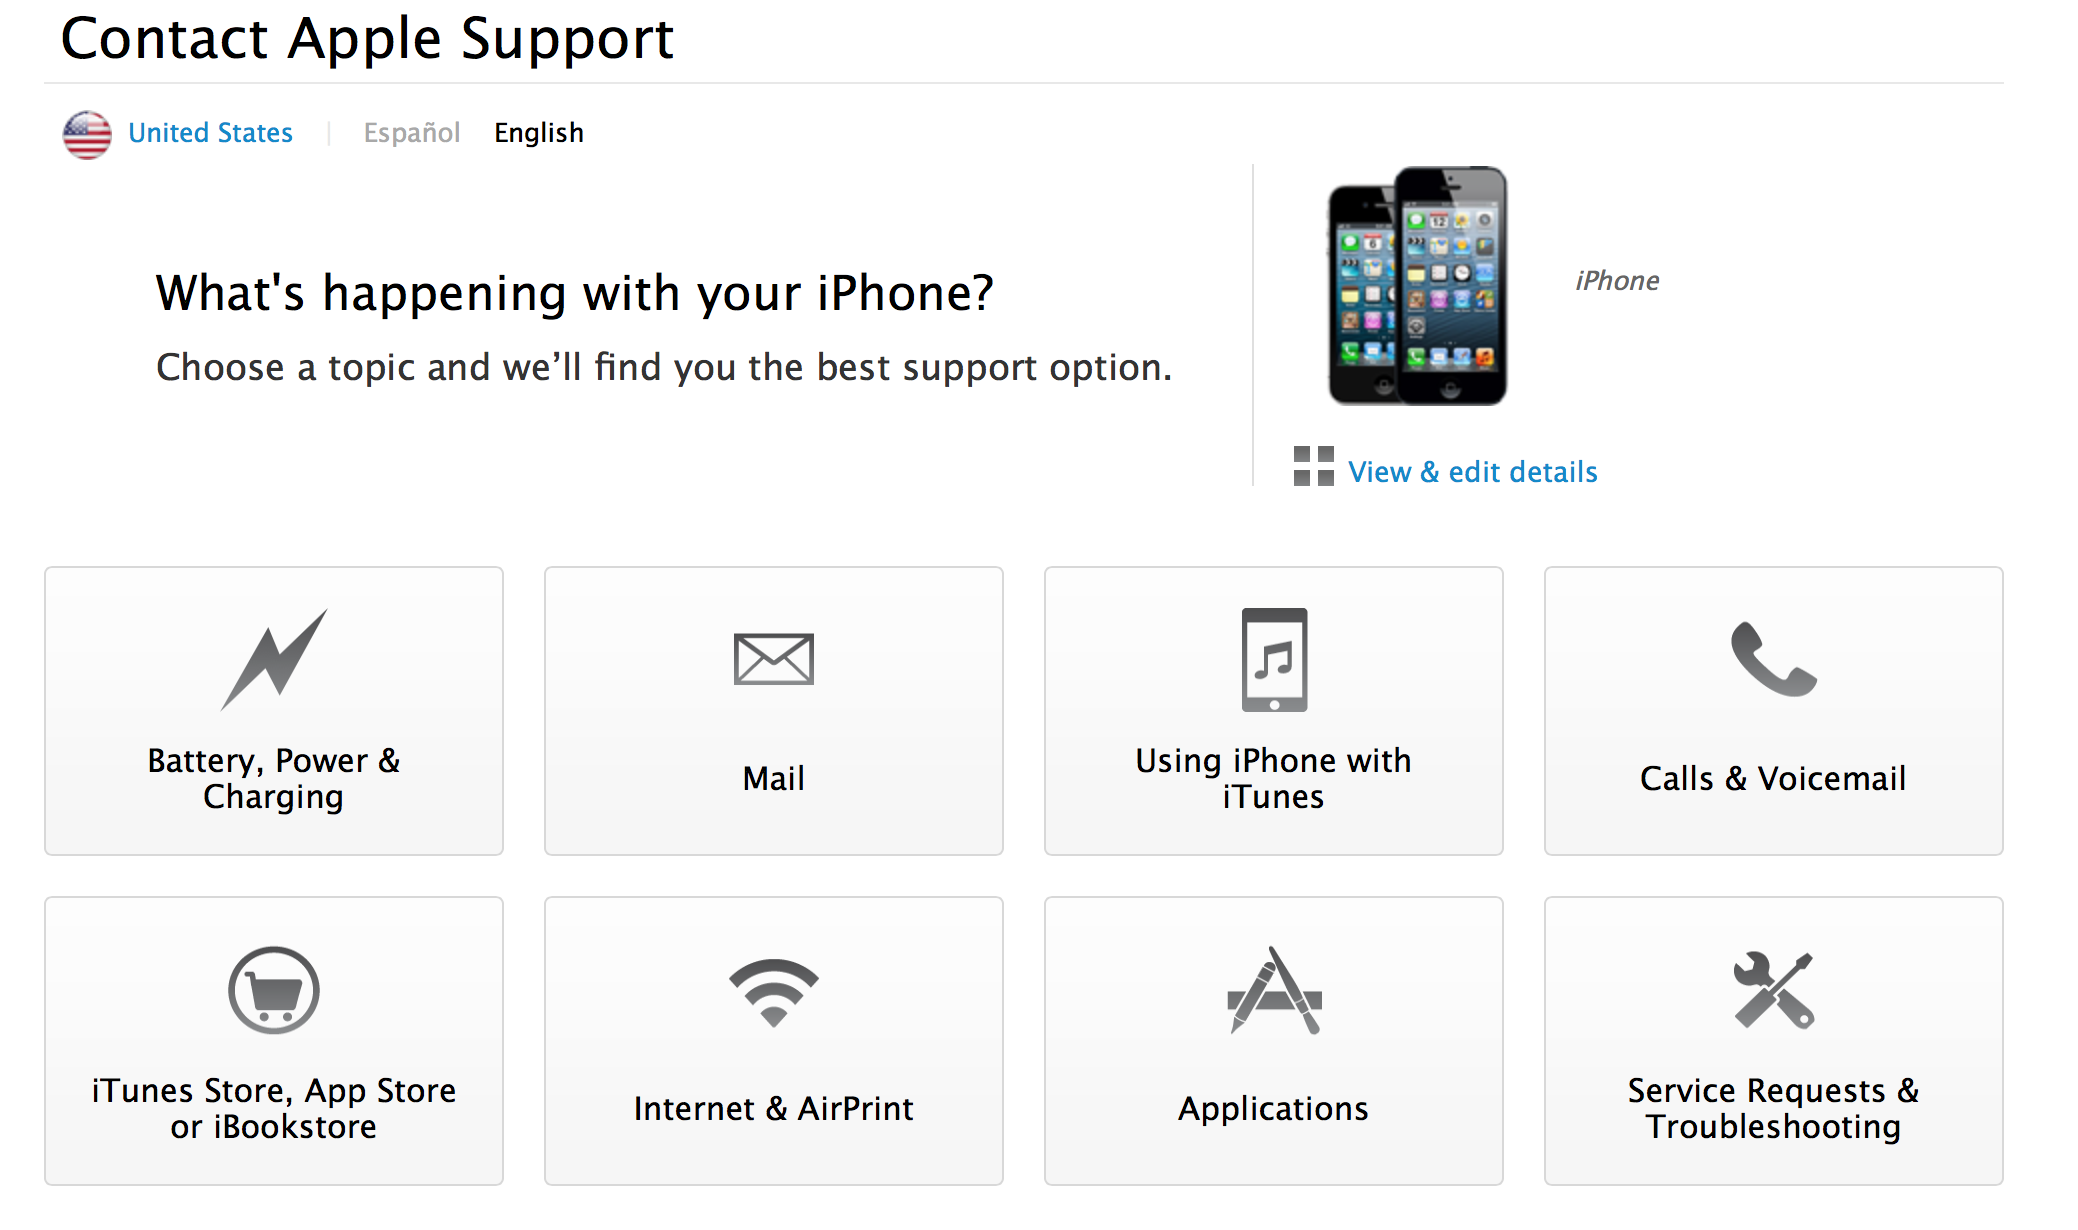 apple launches more intuitive applecare support website, 24/7 chat